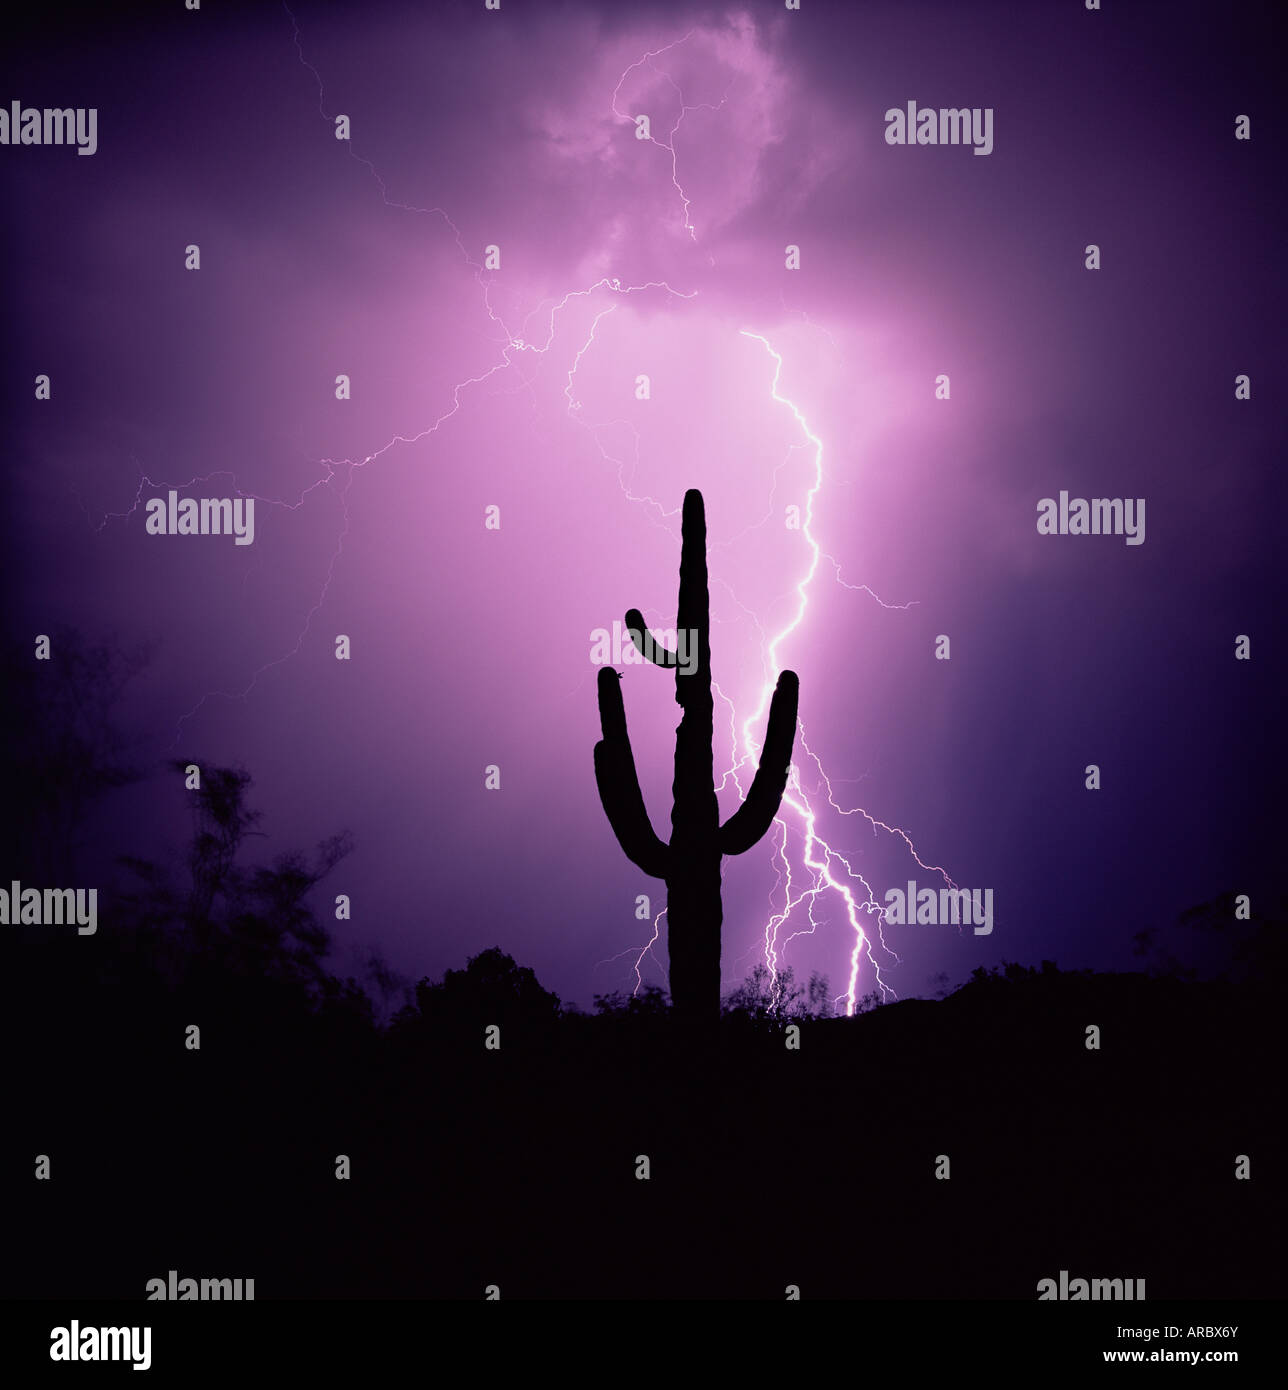 Cactus silhouetted against lightning, Tucson, Arizona, United States of America (U.S.A.), North America - Stock Image